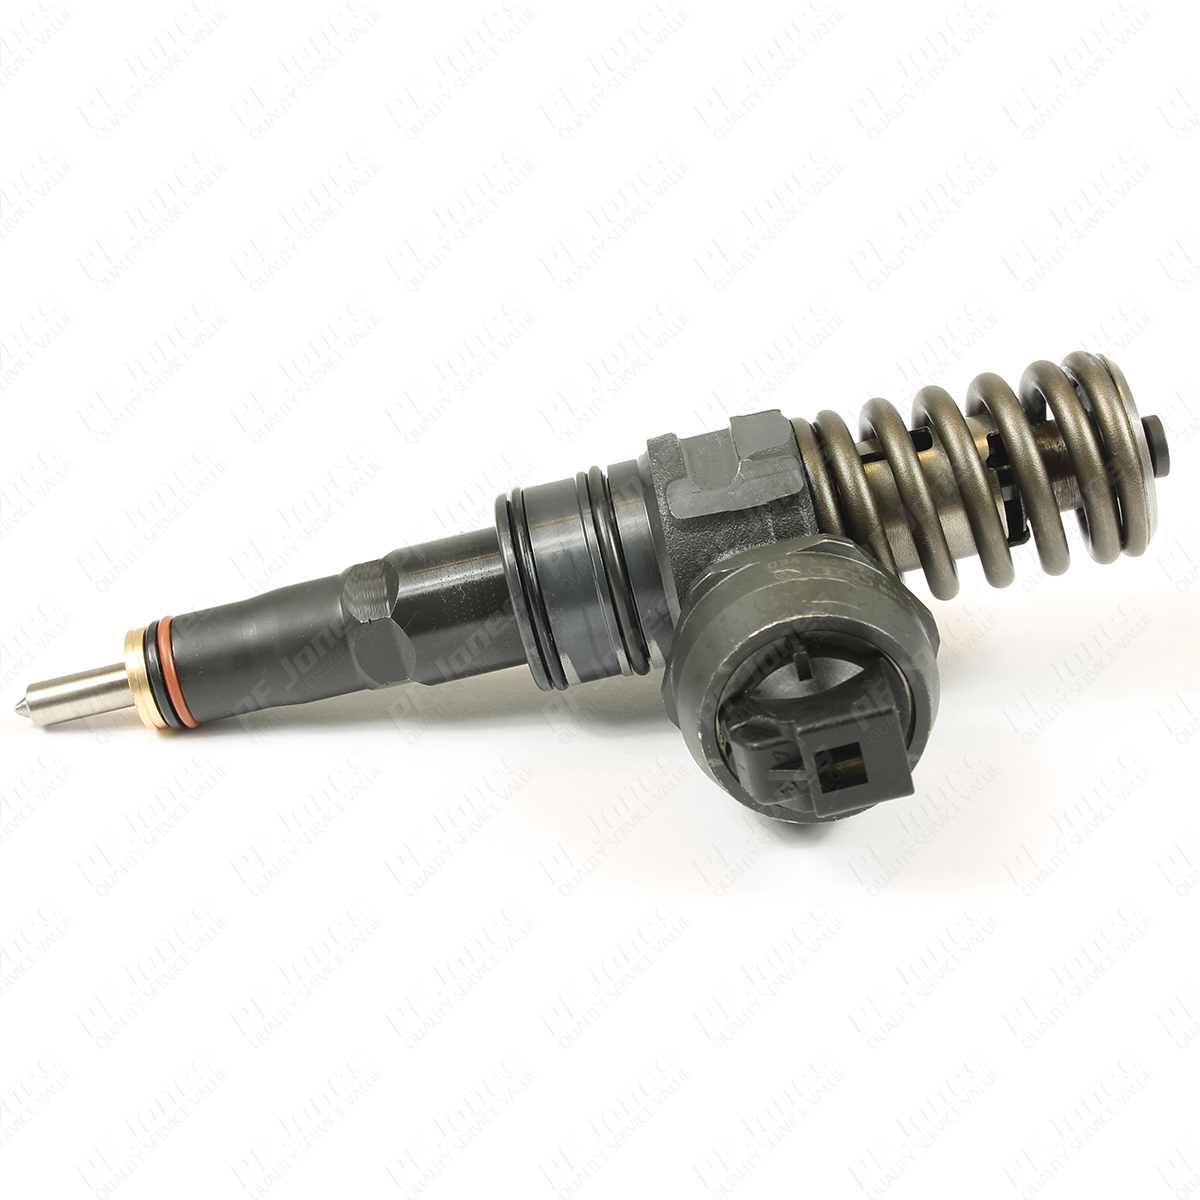 Fuel Injector Cost >> Ford Galaxy 1.9 TDI 2003-2006 Reconditioned Bosch Diesel Injector 0414720216